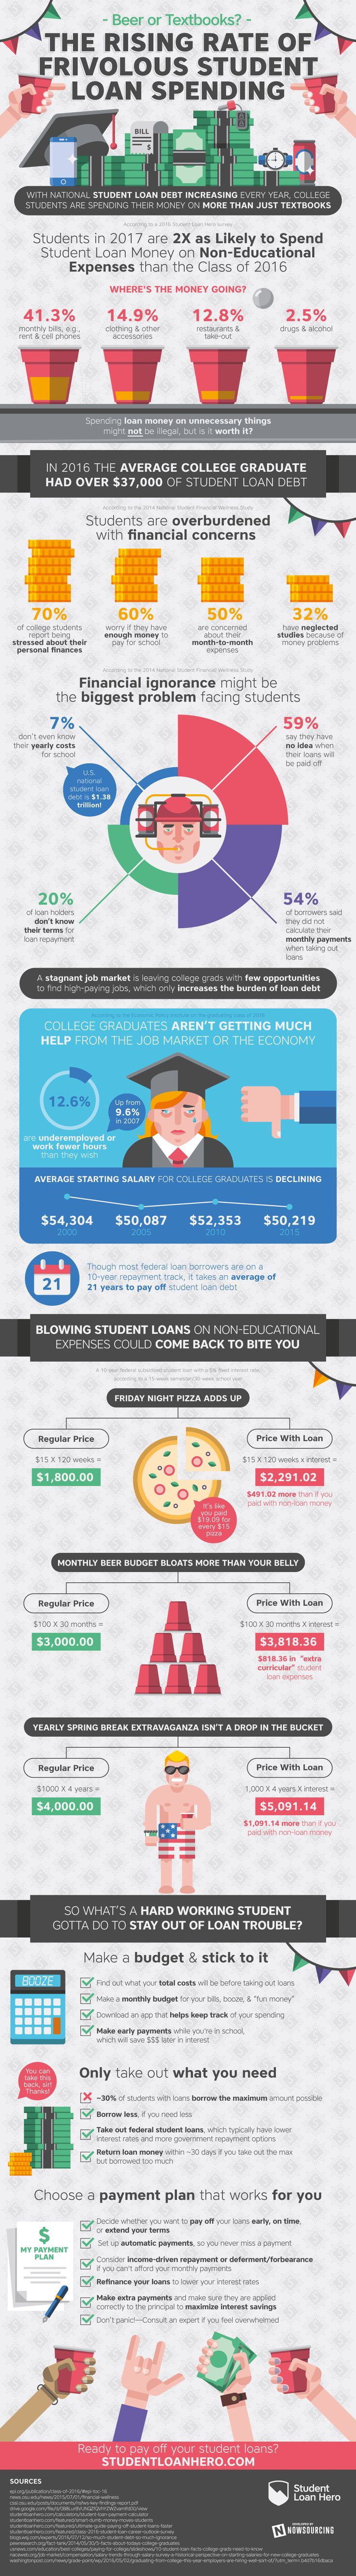 Over the last 15 years the starting salary for recent college grads has declined about $4000. Unfortunately the amount of student loan debt most students are graduating with has skyrocketed. You can now expect to graduate into a worse job …